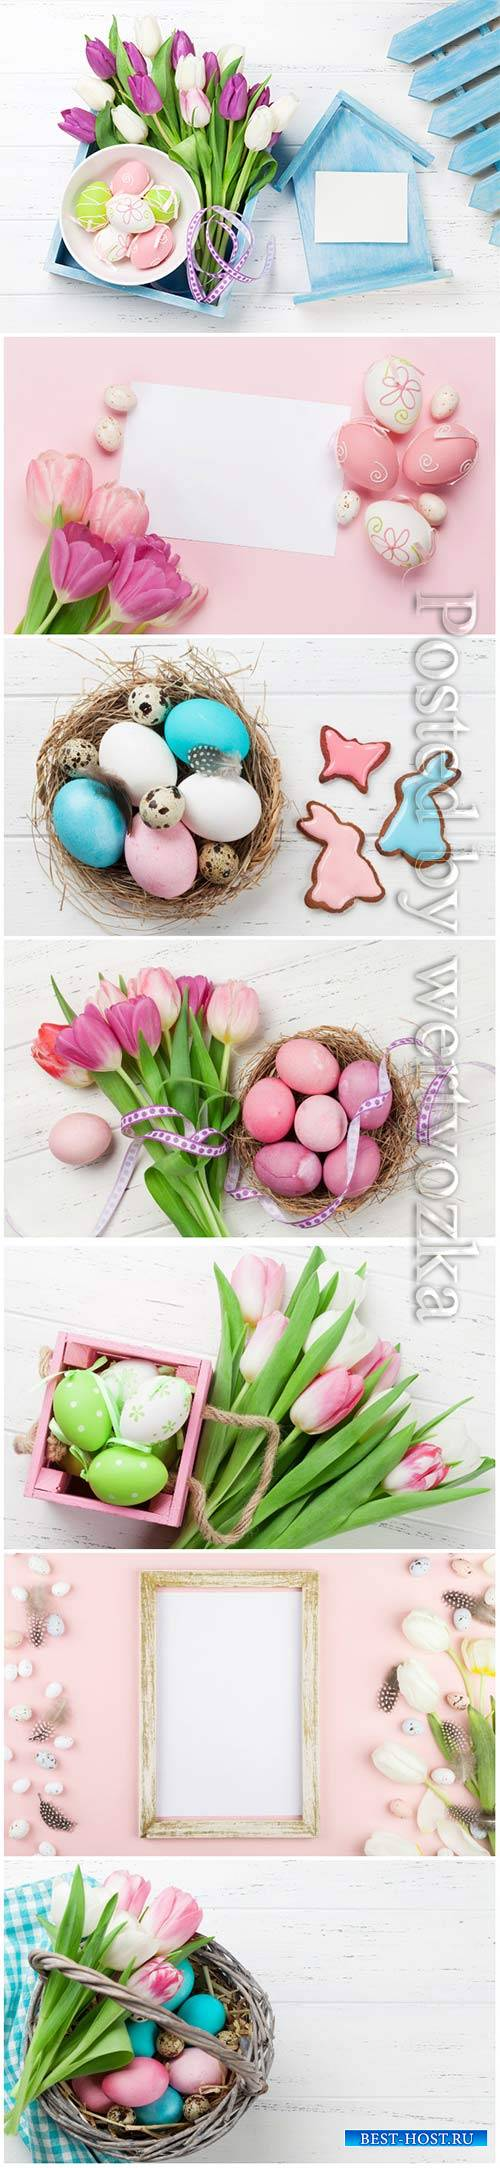 Happy Easter stock photo, Easter eggs, spring flowers # 7